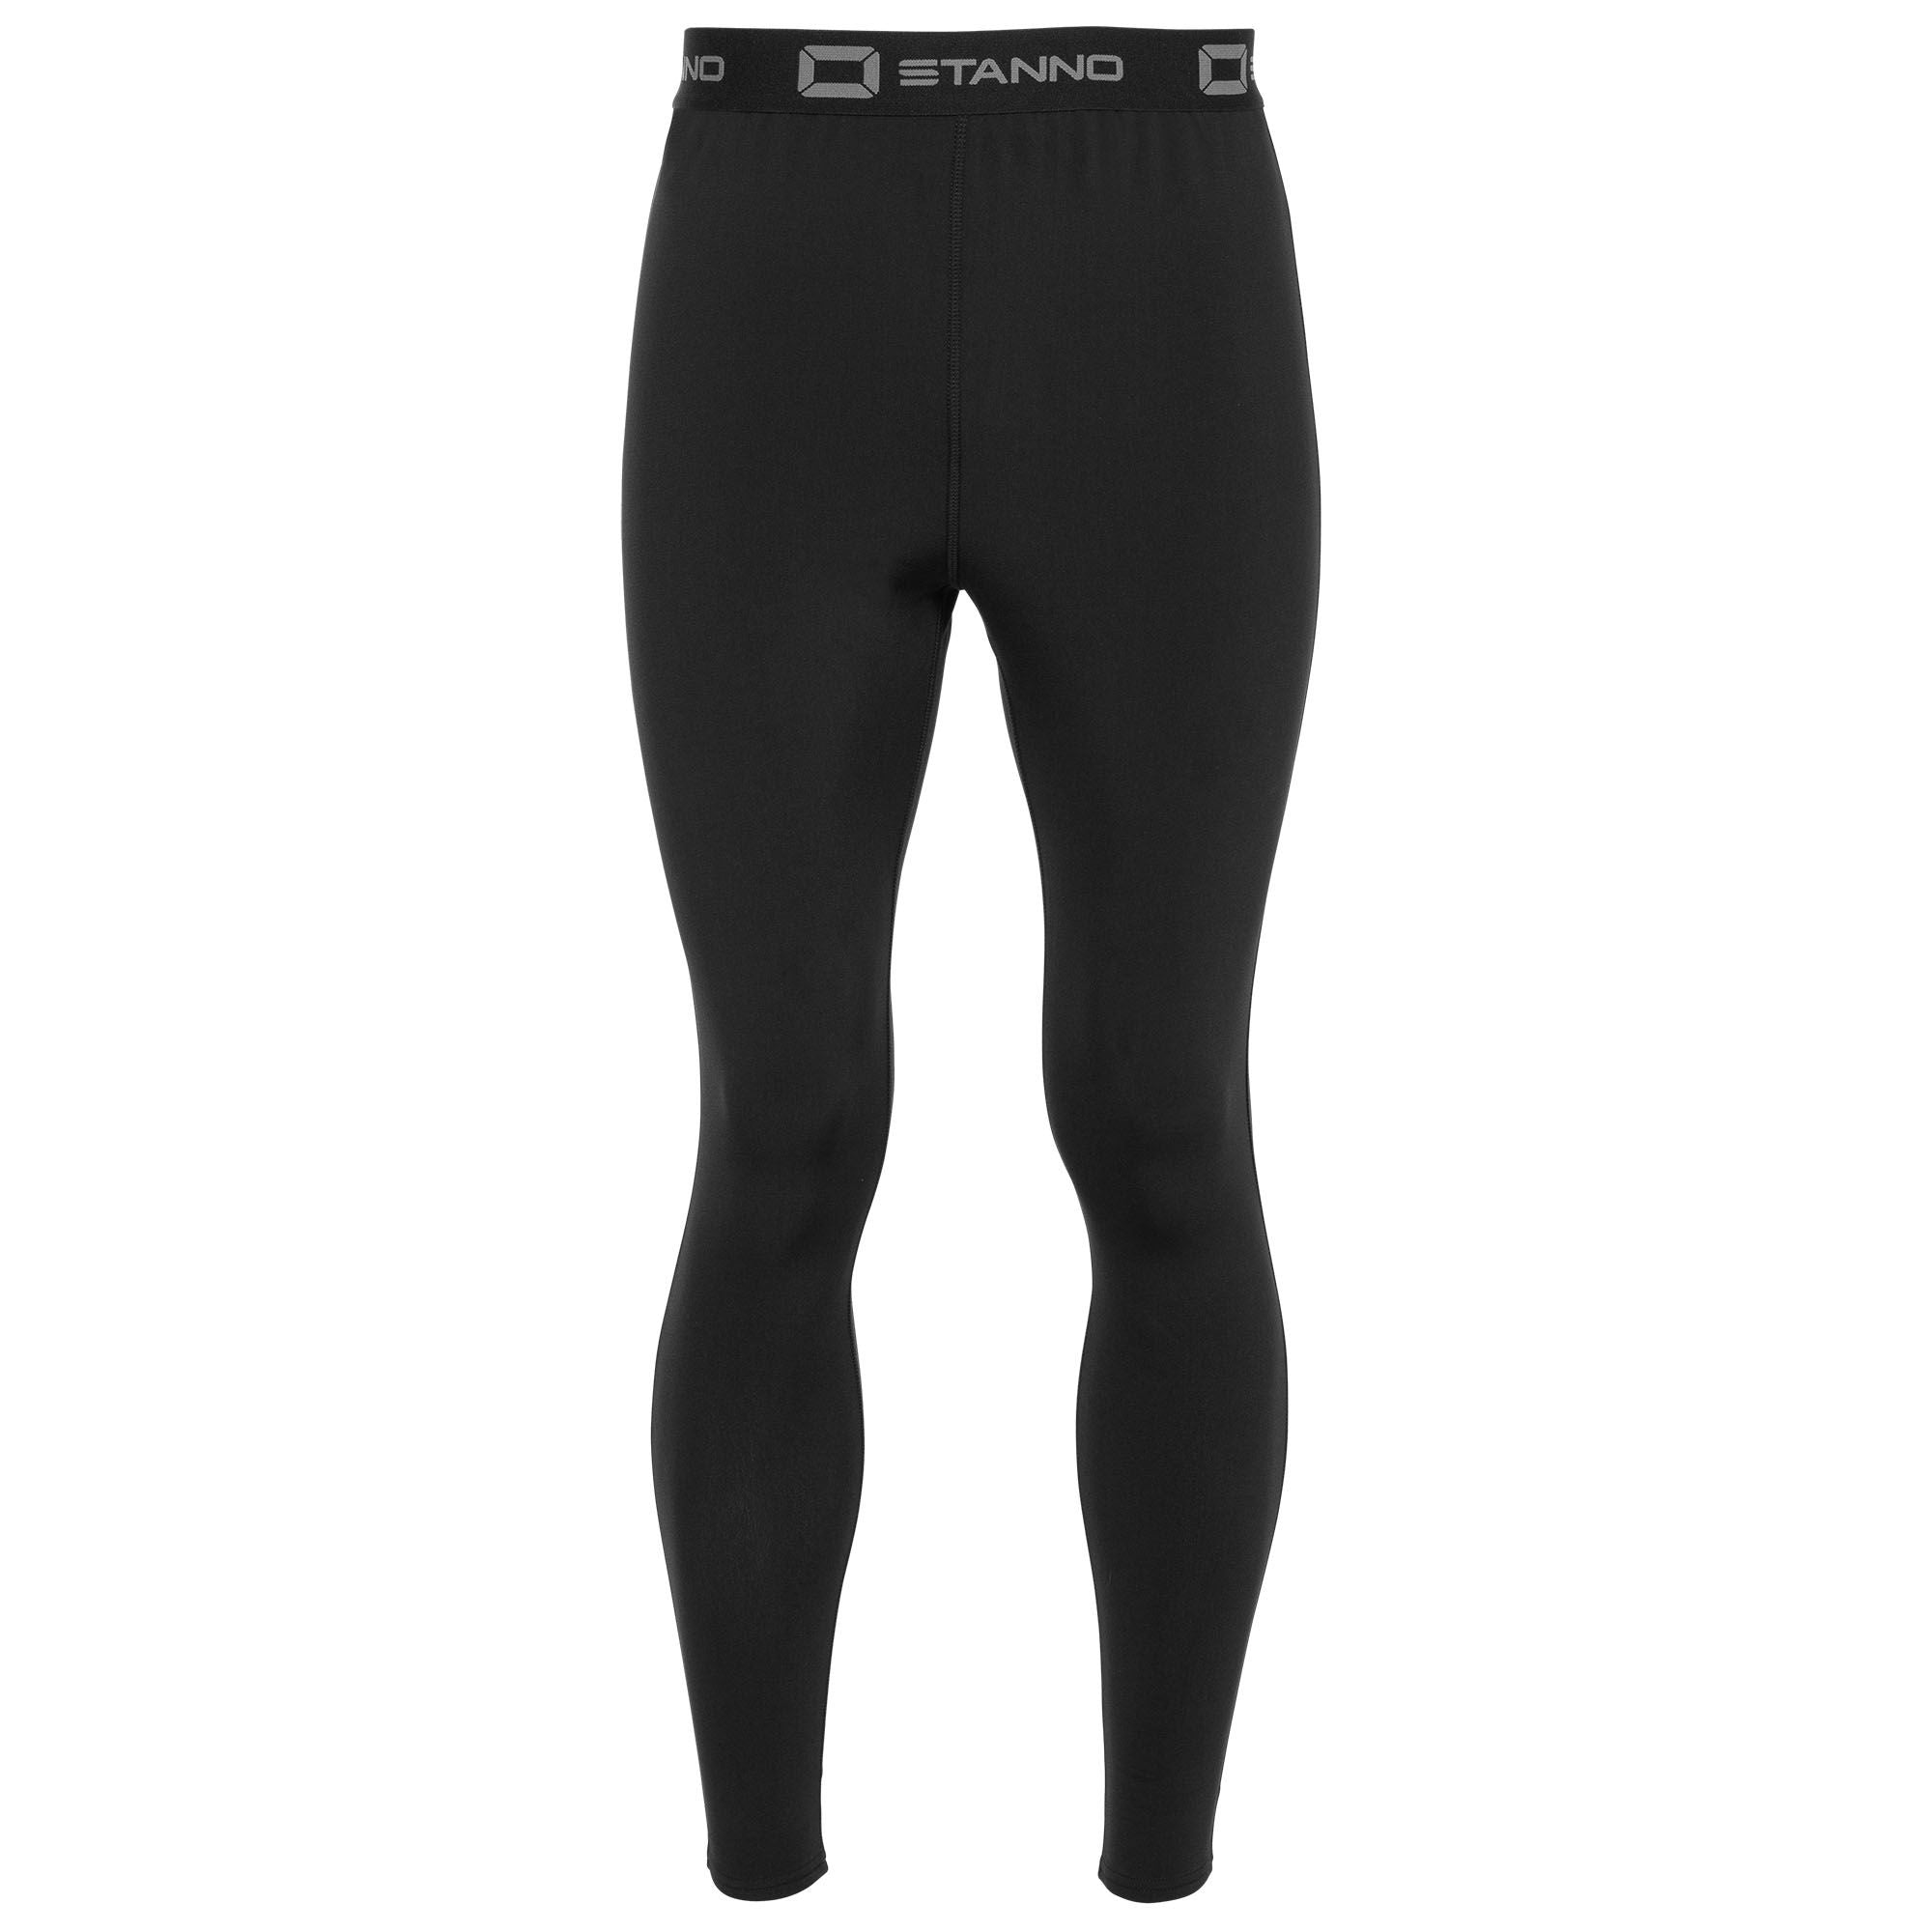 Longfleet YFC Stanno Thermo Pants - Black